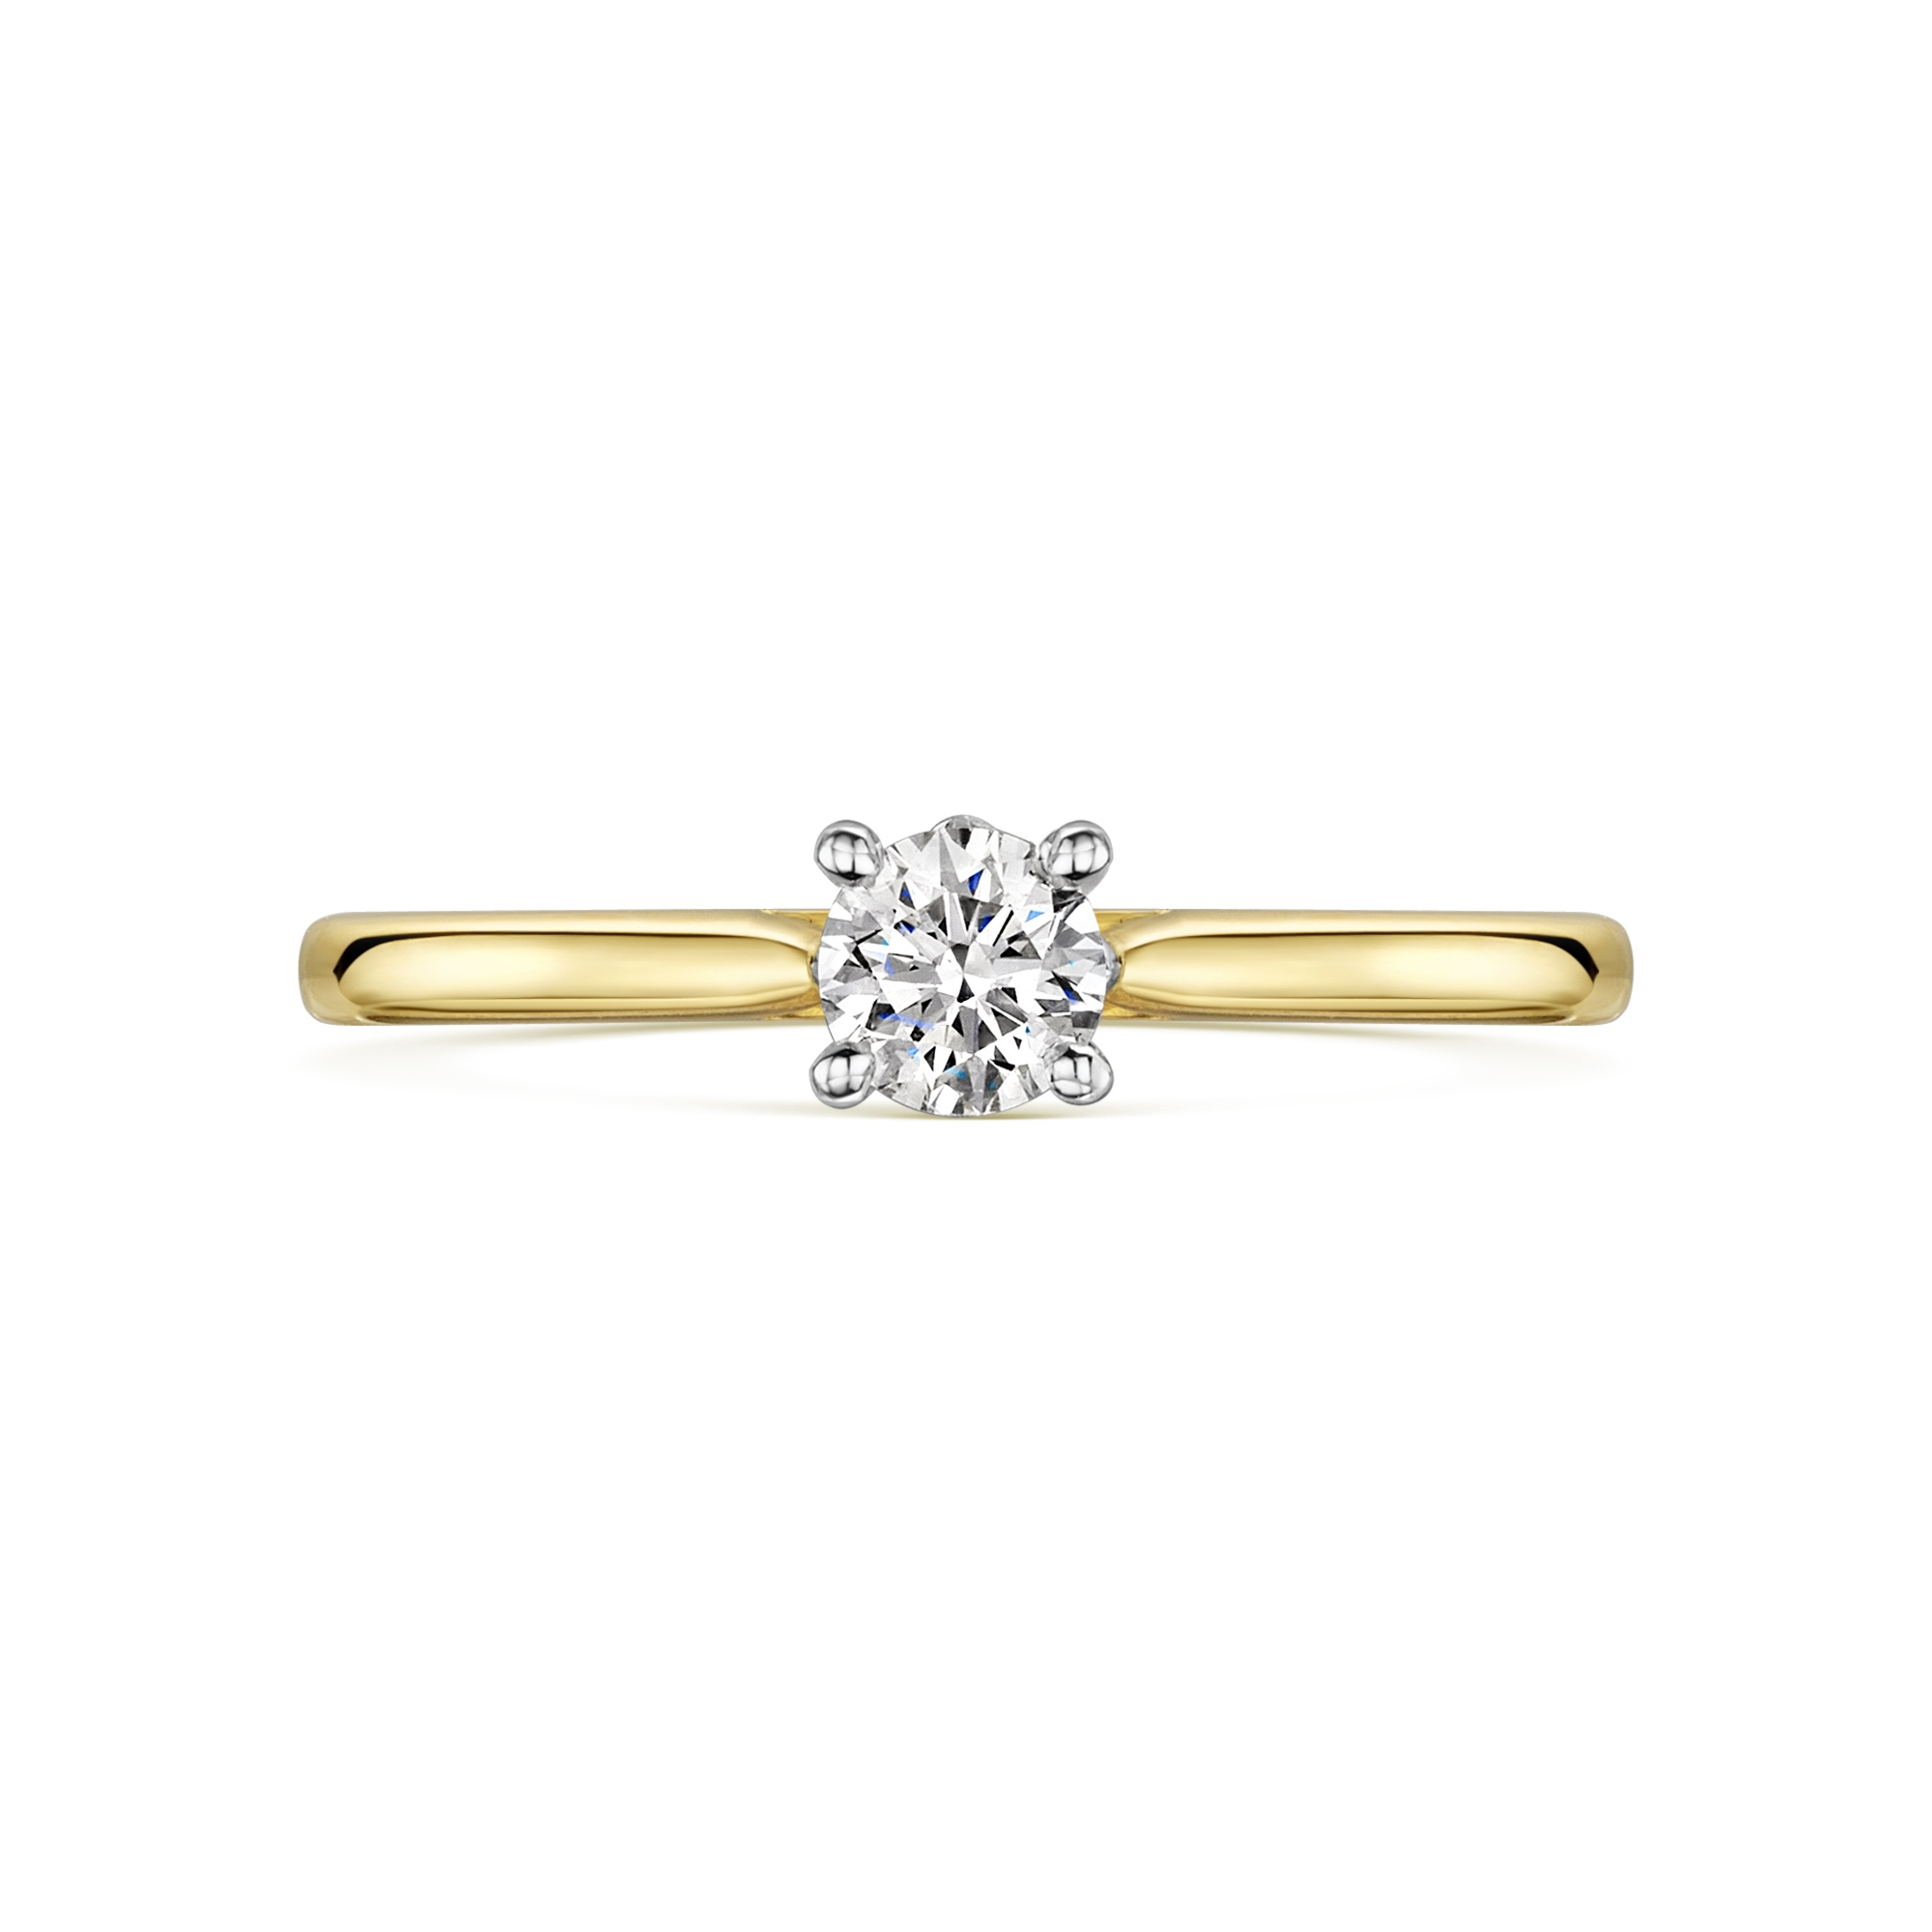 0.38ct 18ct Yellow and White 4 Claw Solitaire